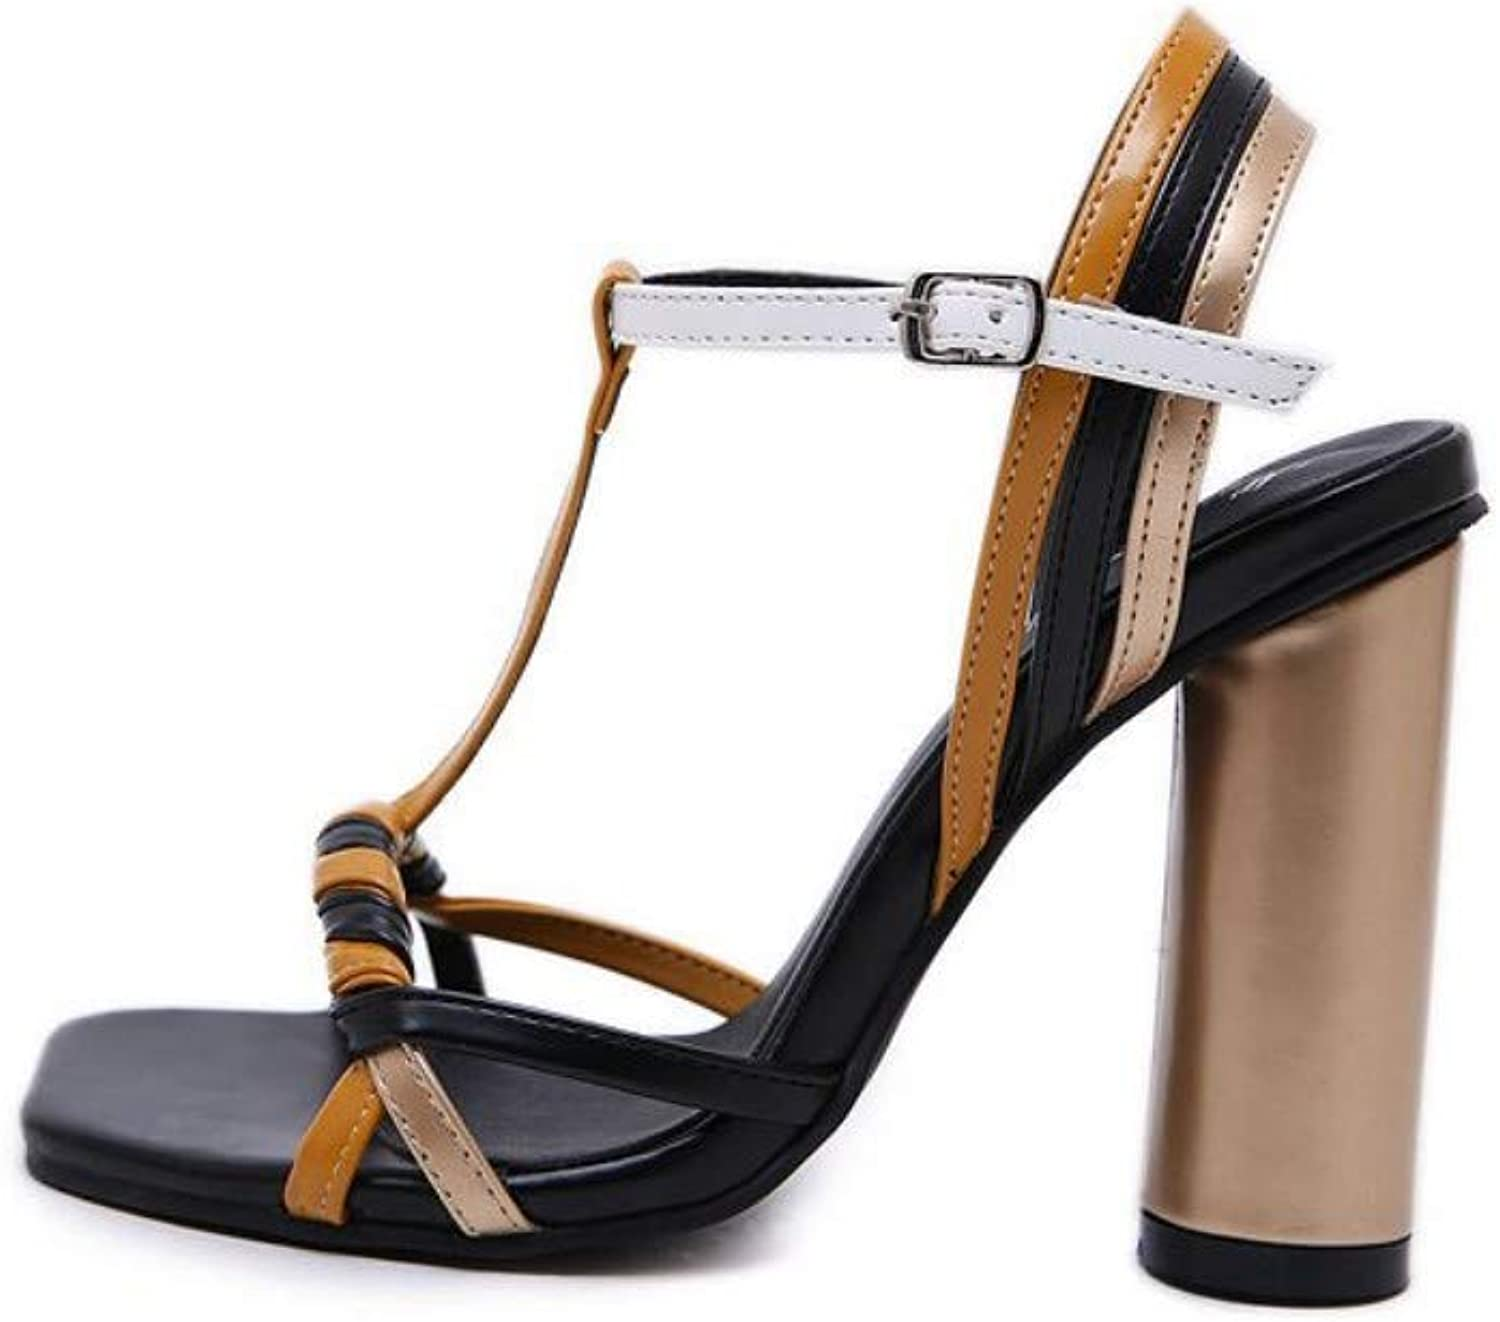 JQfashion Women's High-Heeled shoes Rough-Heeled Square-Headed High-Heeled Sandals Coloured Roman shoes